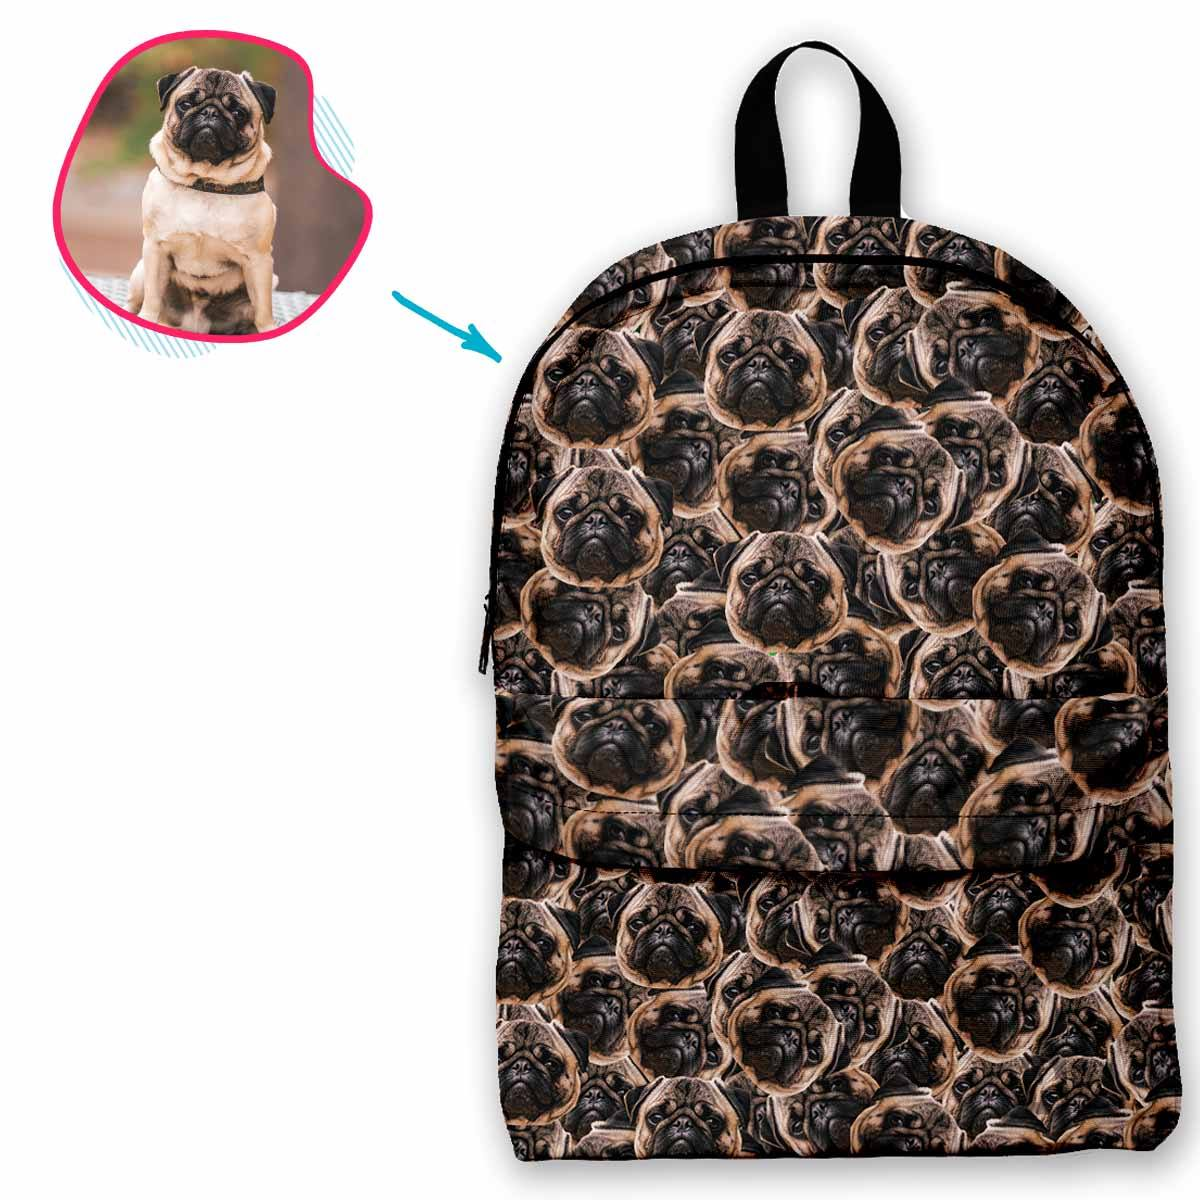 dog mash classic backpack personalized with photo of face printed on it